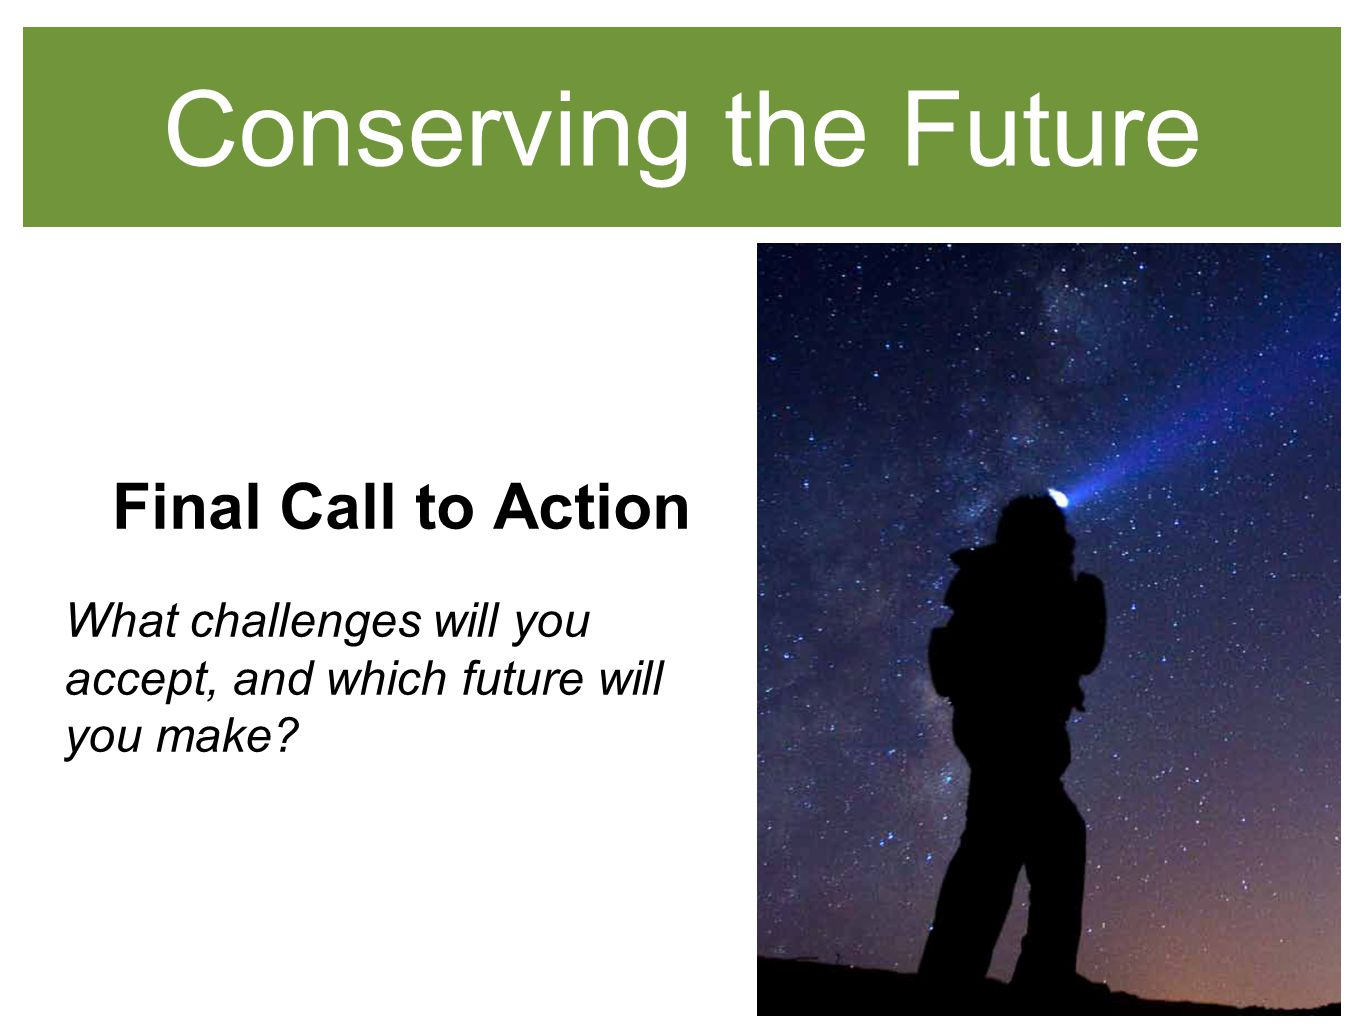 Conserving the Future Final Call to Action What challenges will you accept, and which future will you make